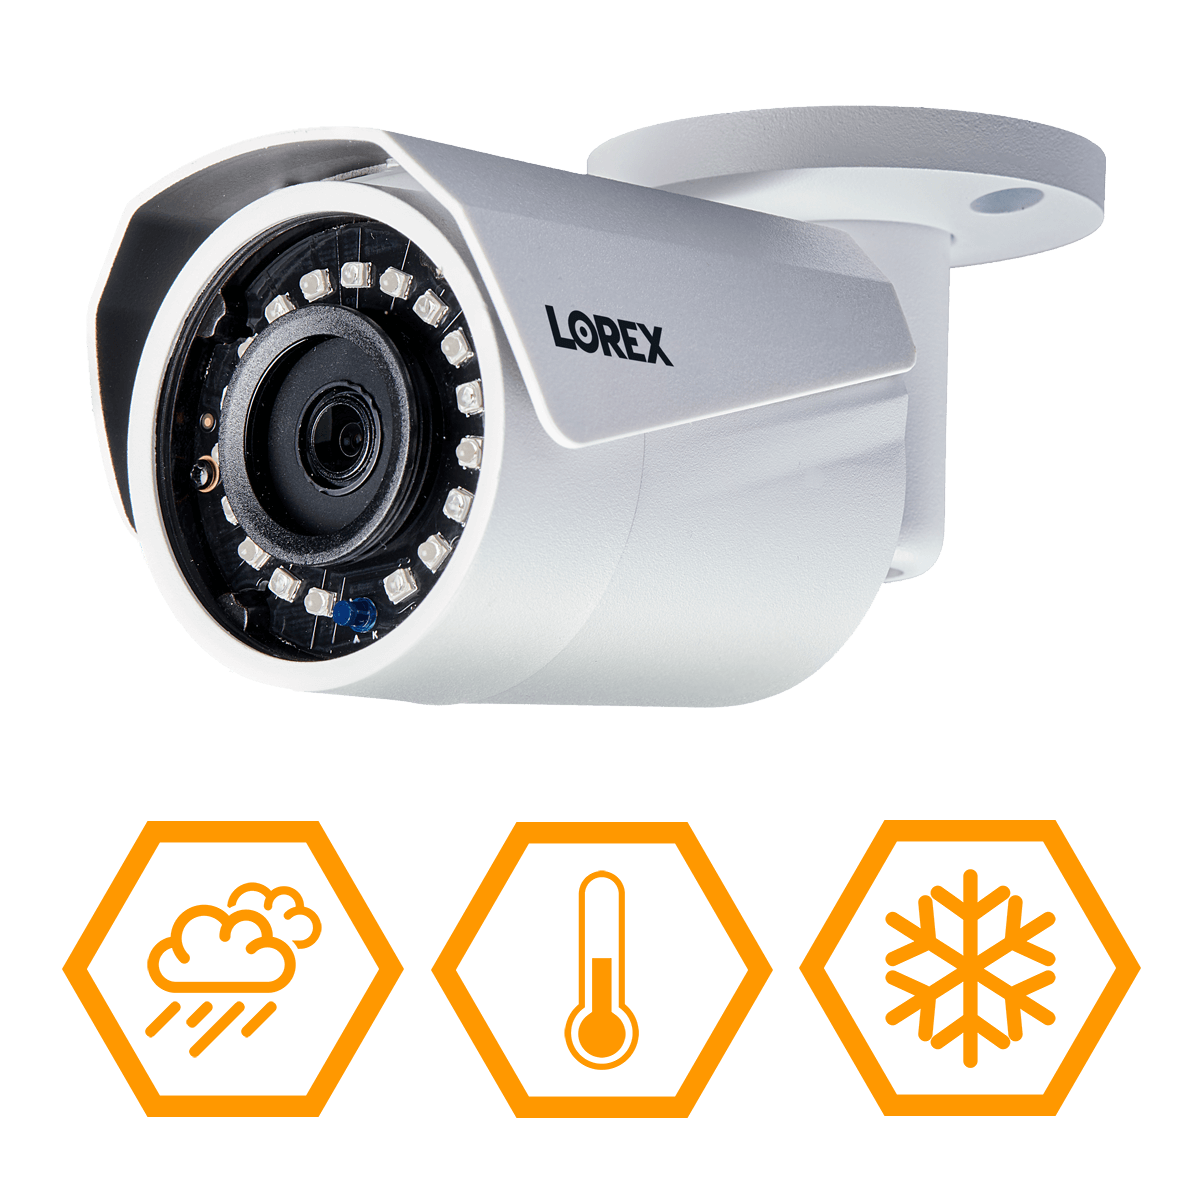 Extreme temperature performance IP66 weatherproof rated security cameras